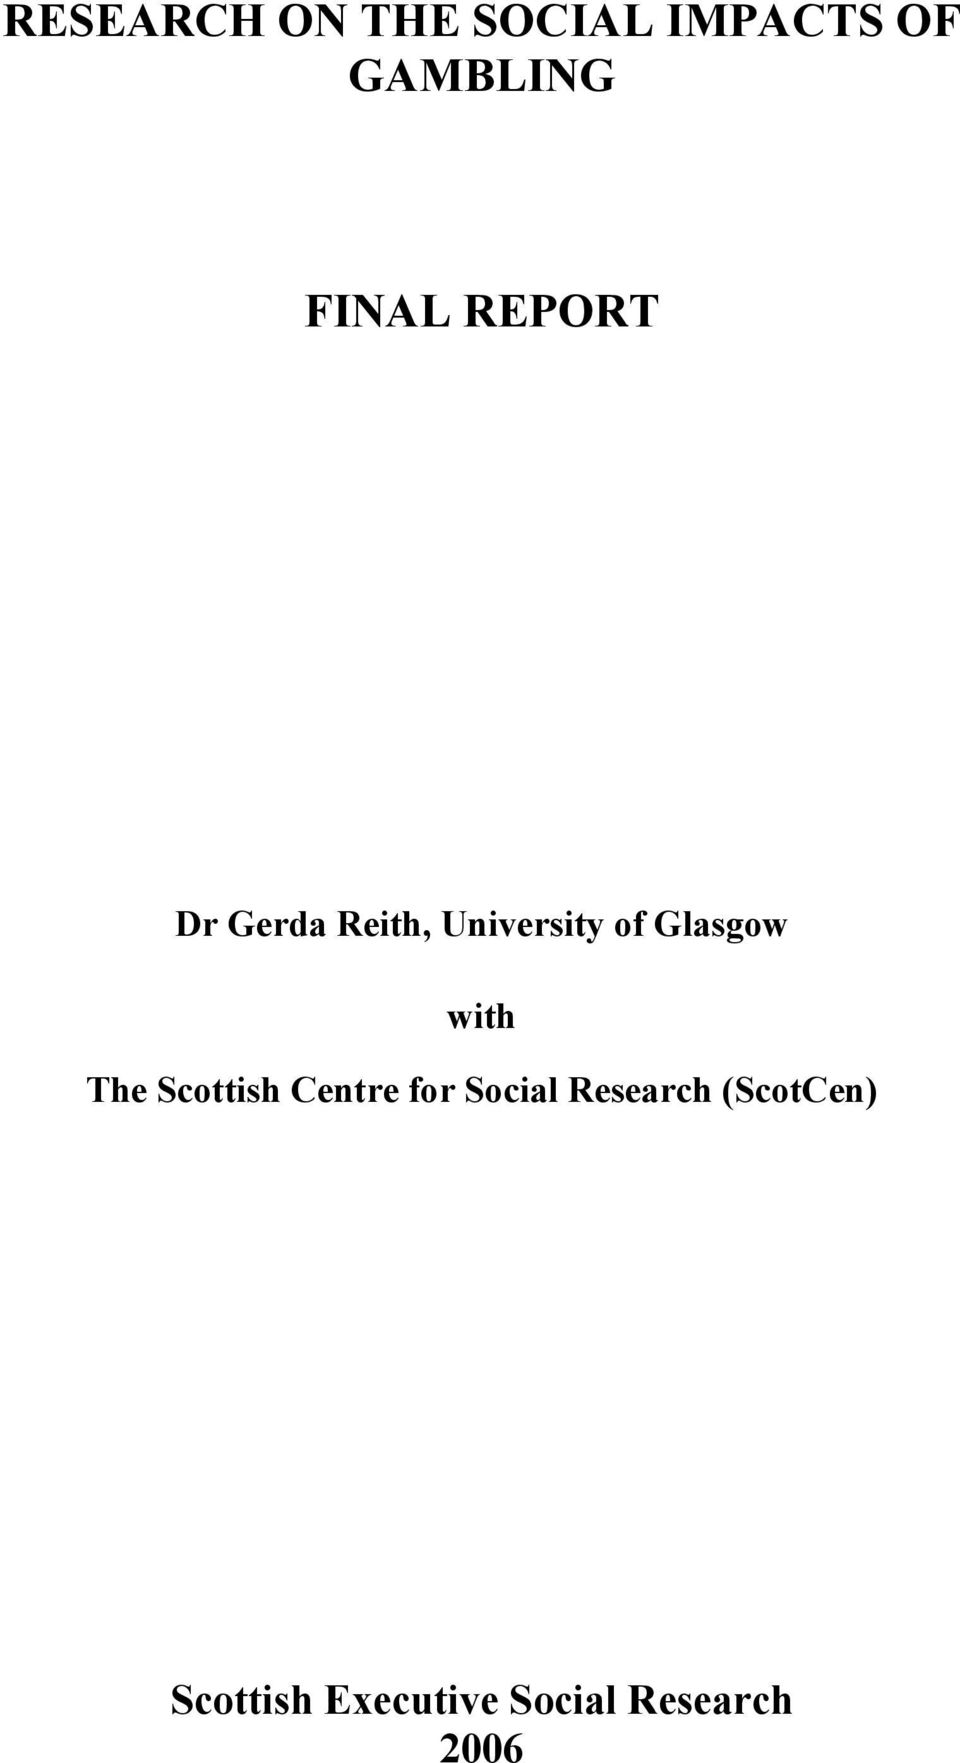 Glasgow with The Scottish Centre for Social